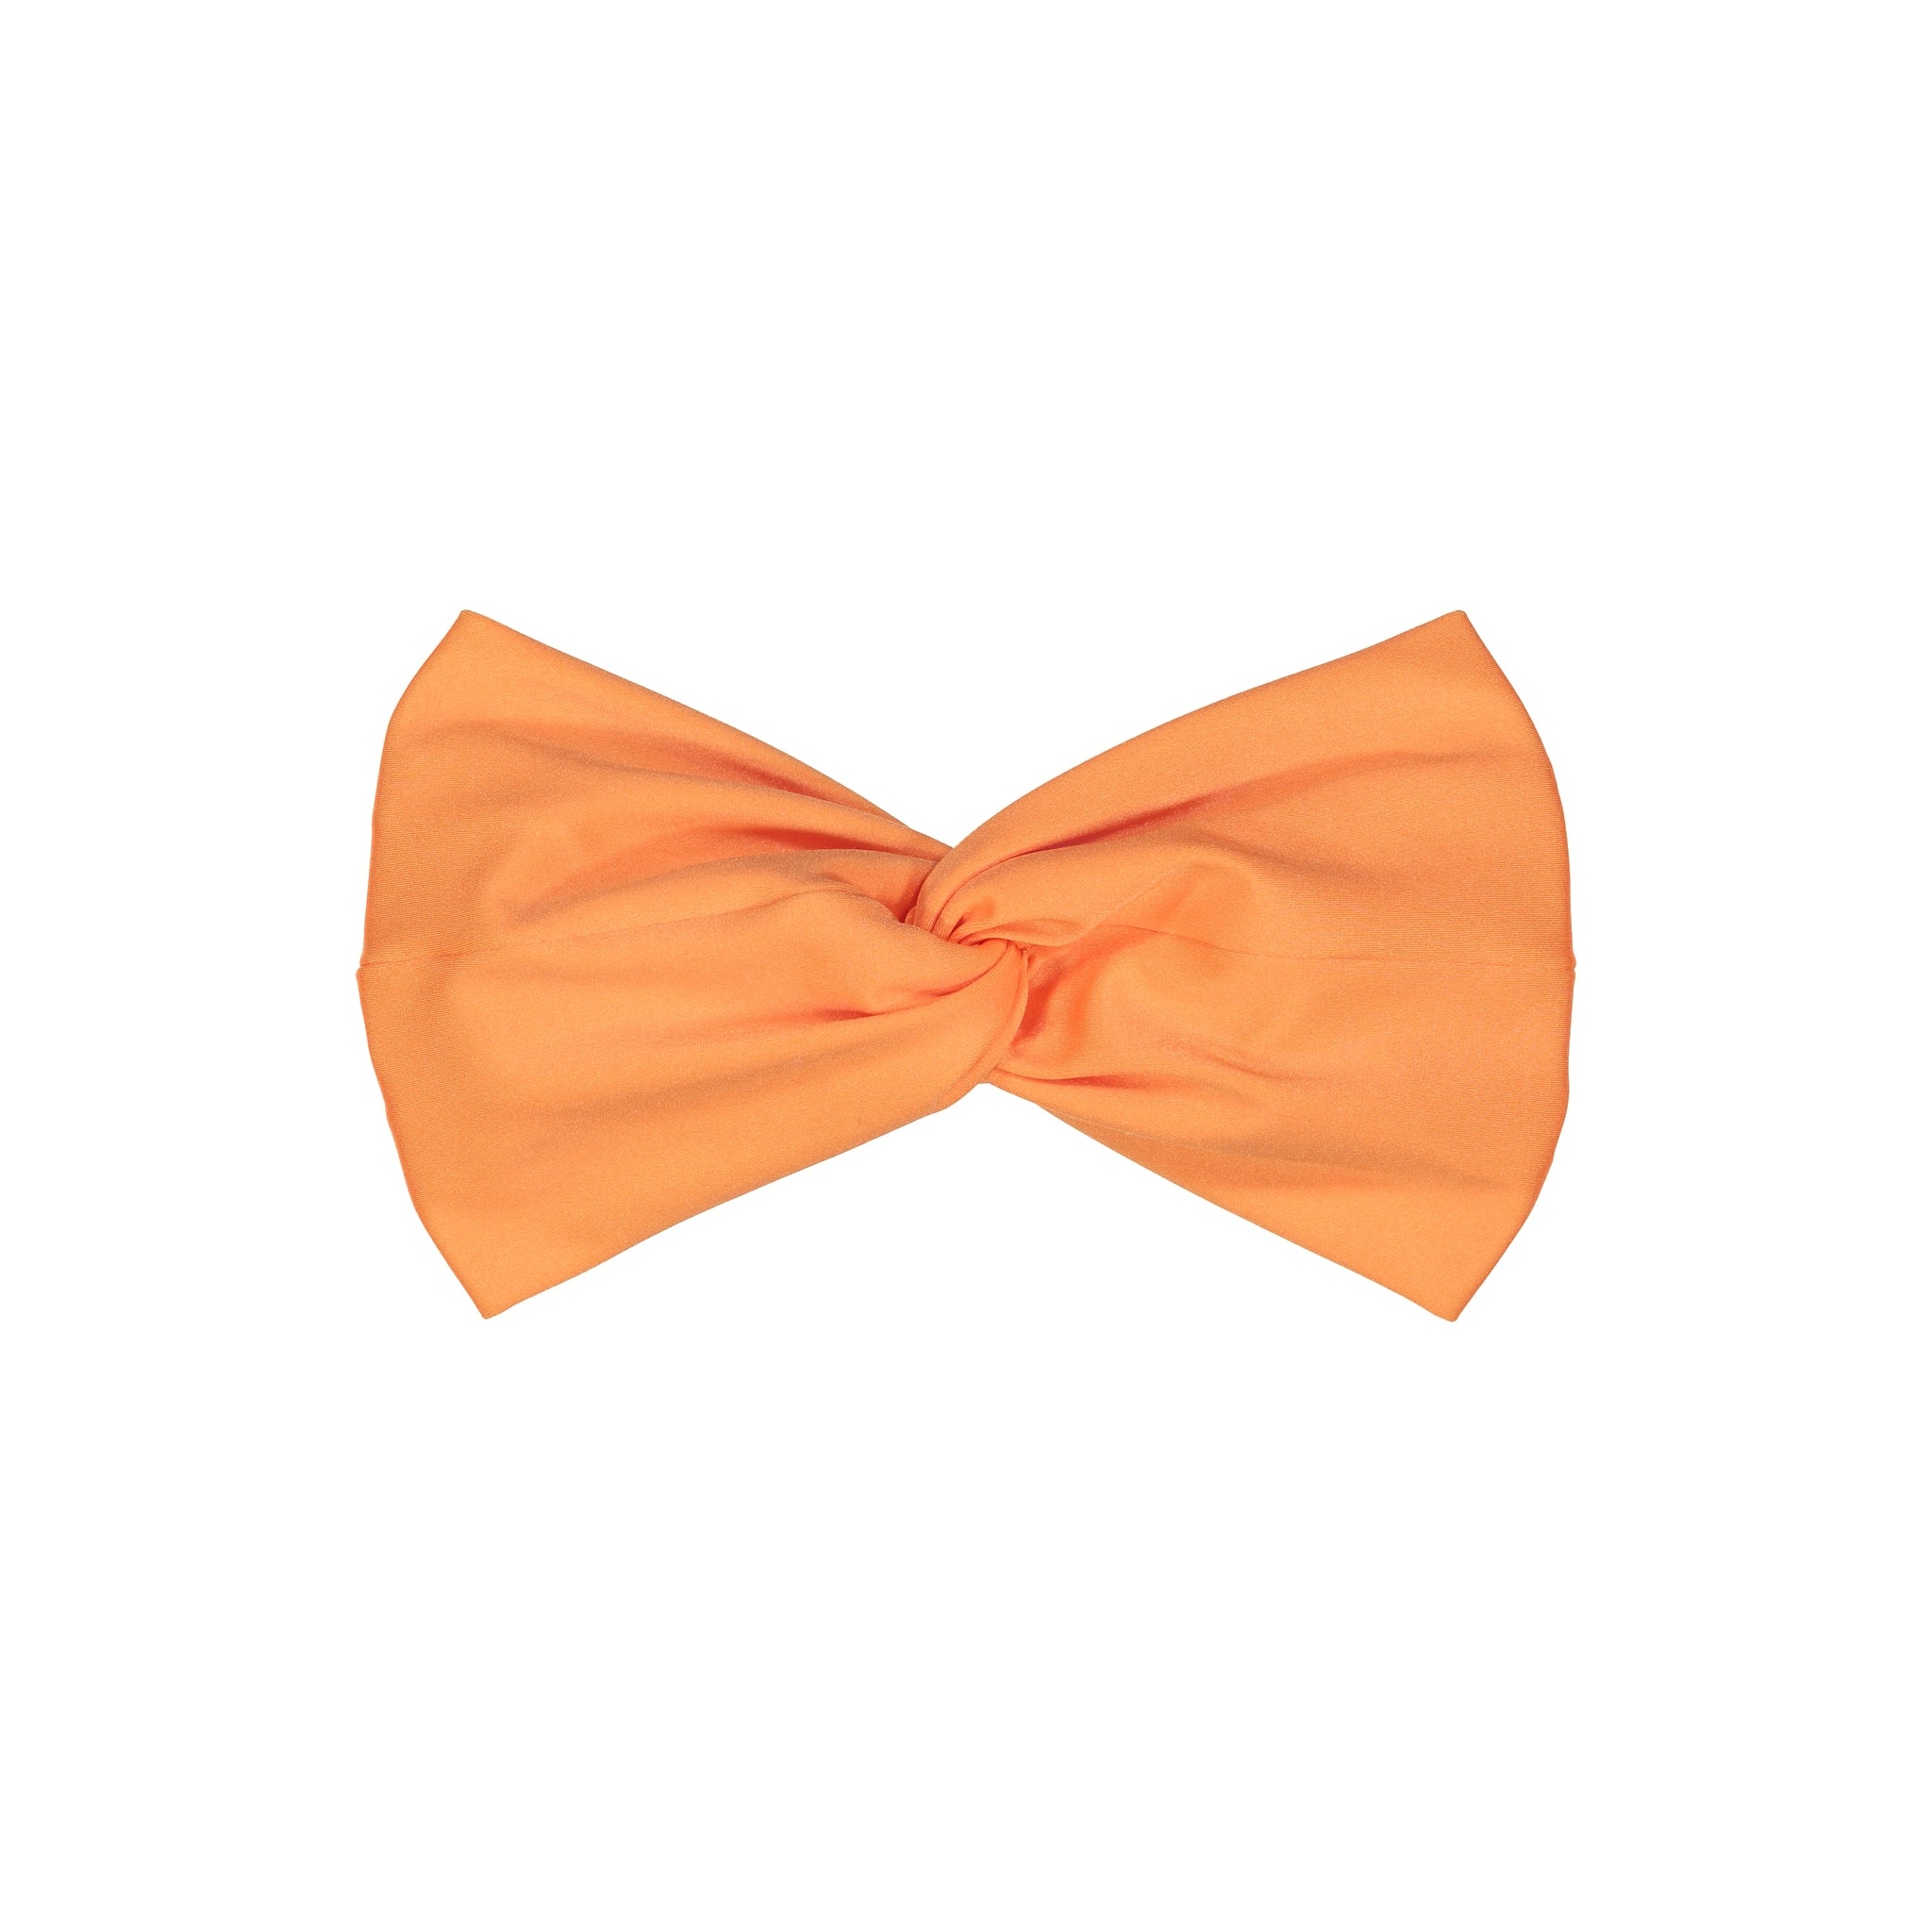 Turban Headband- Neon Orange